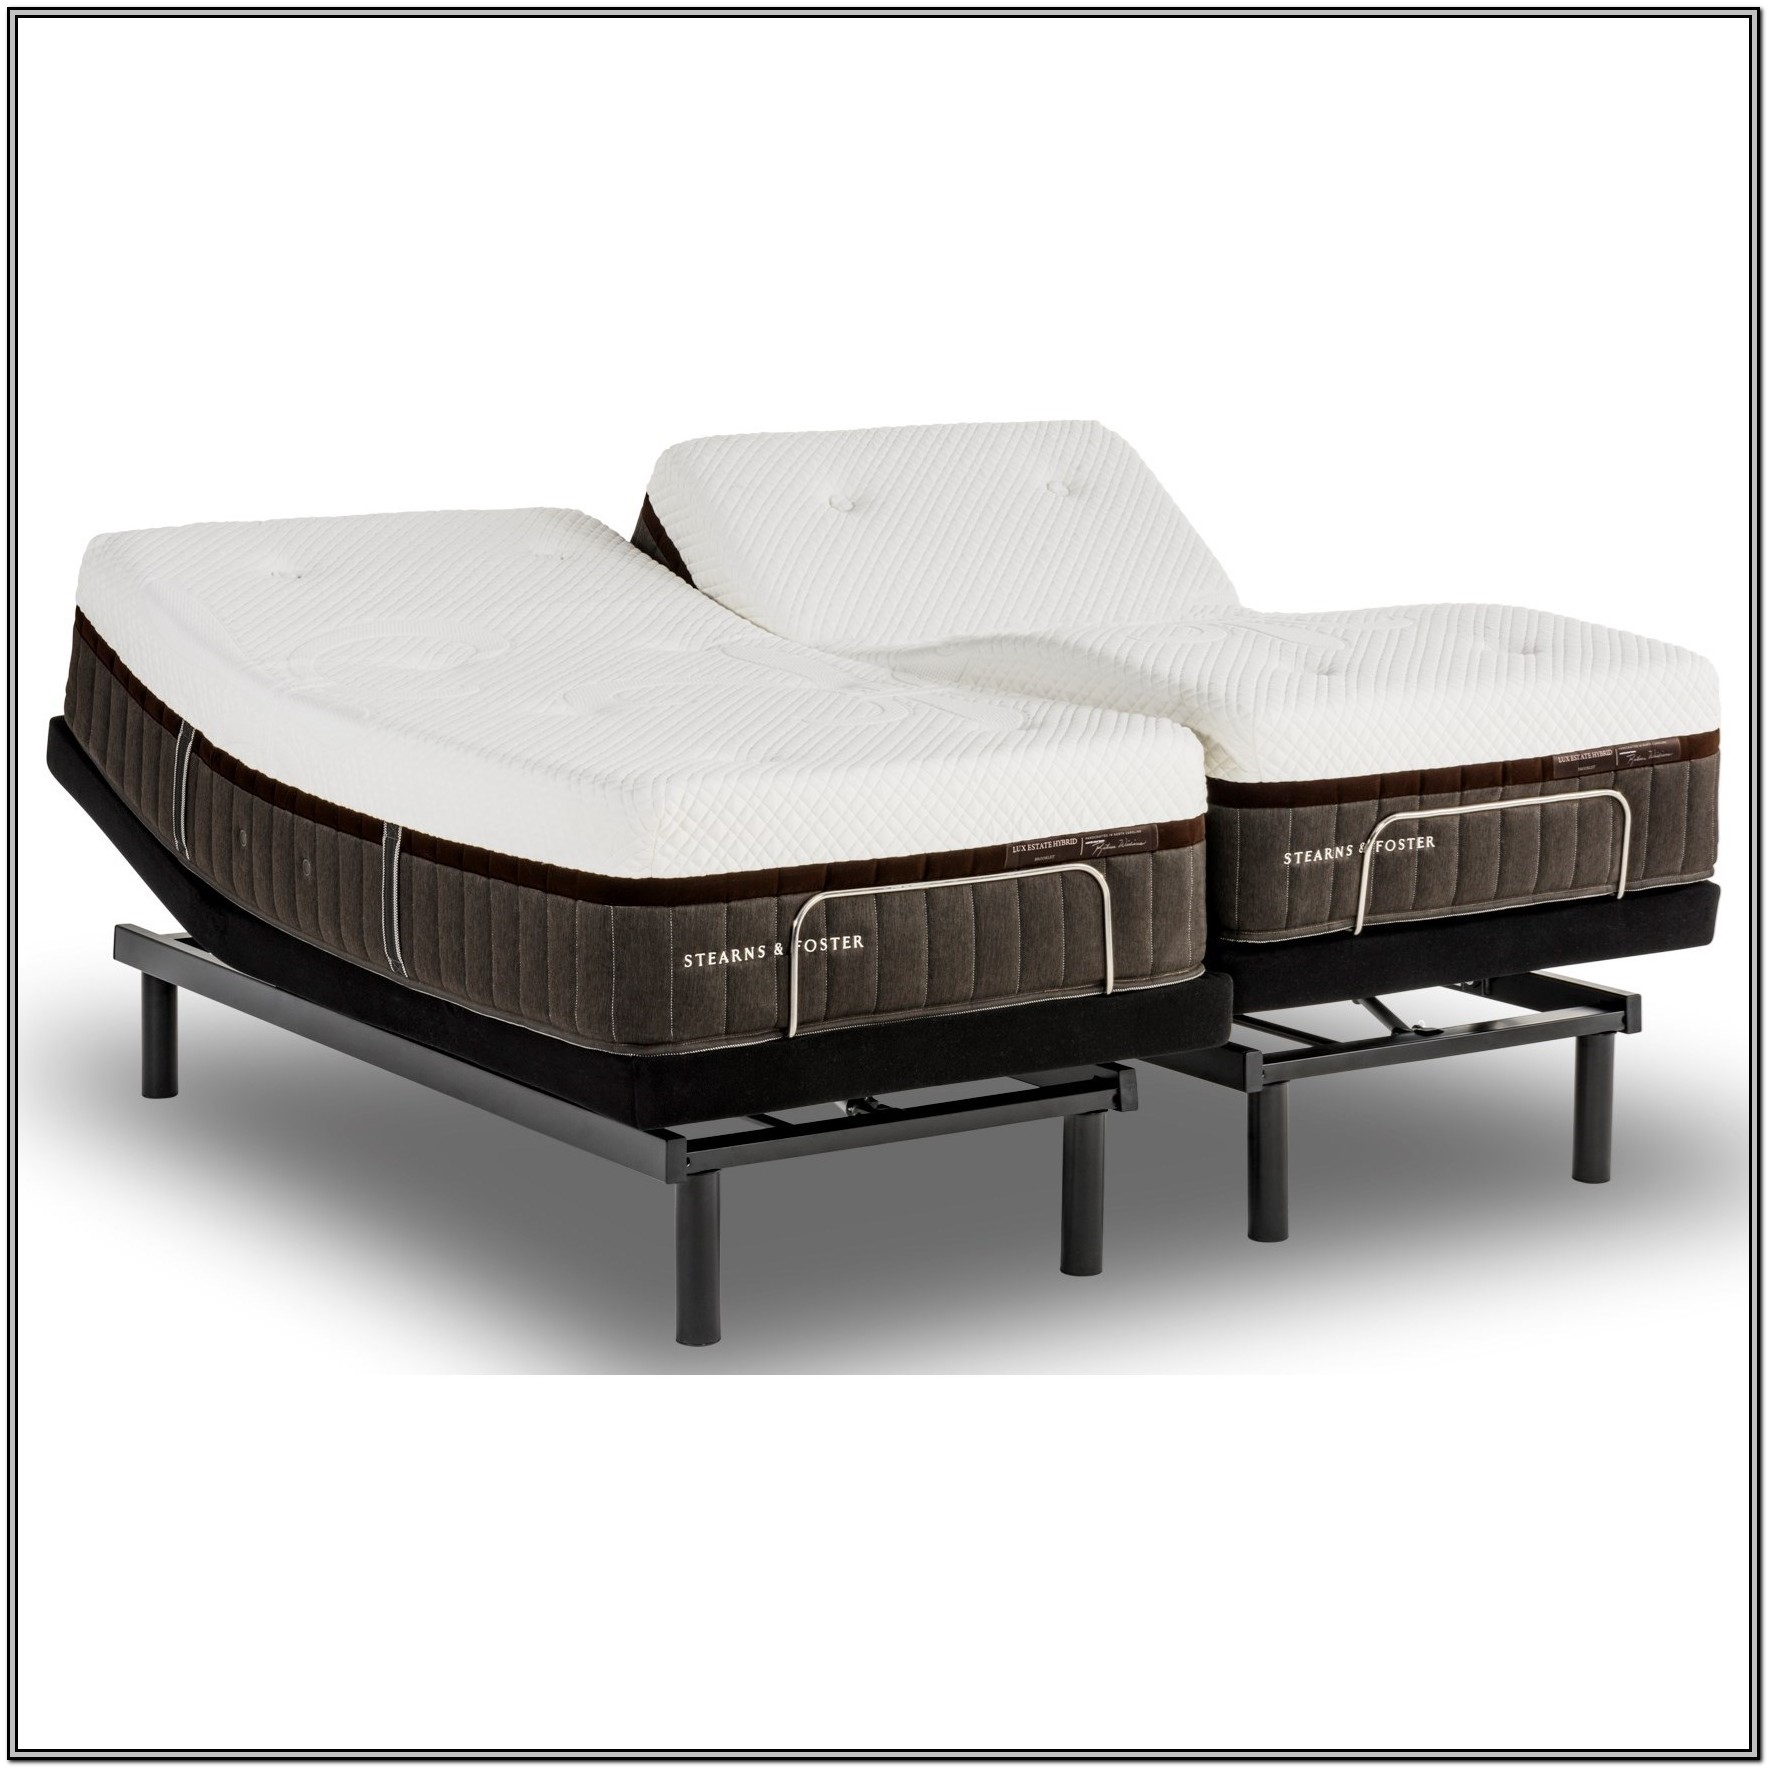 Stearns And Foster Adjustable King Bed